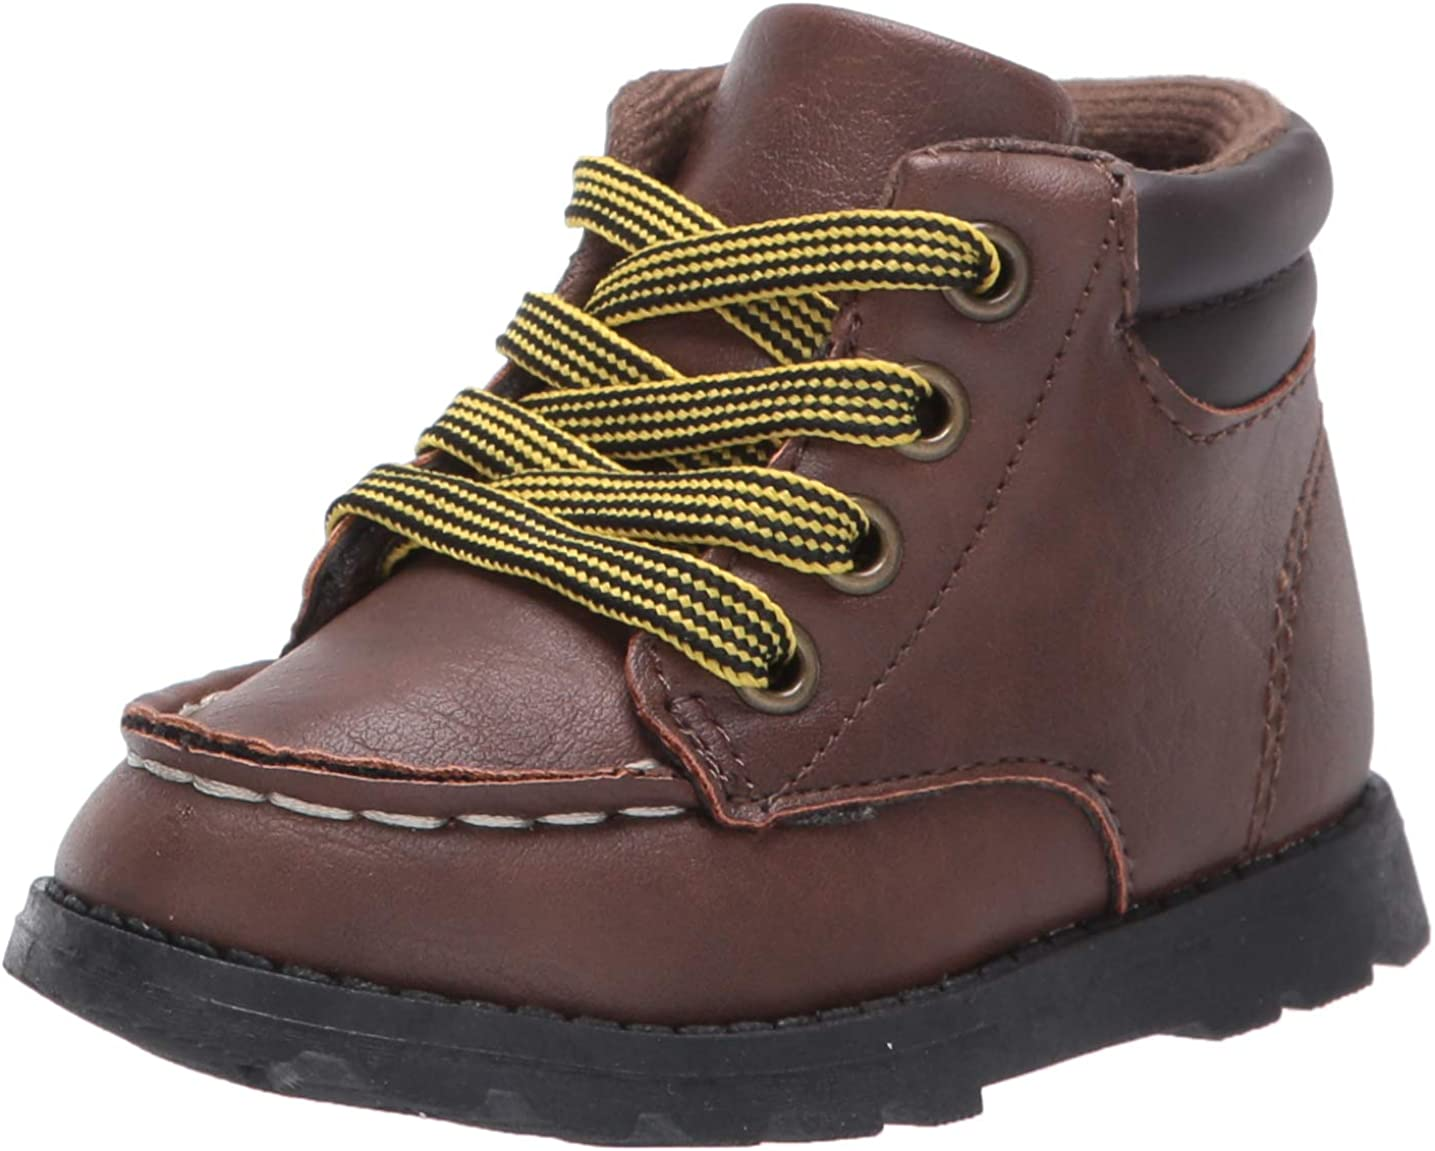 Carter's Unisex-Child Brand Ankle Boot